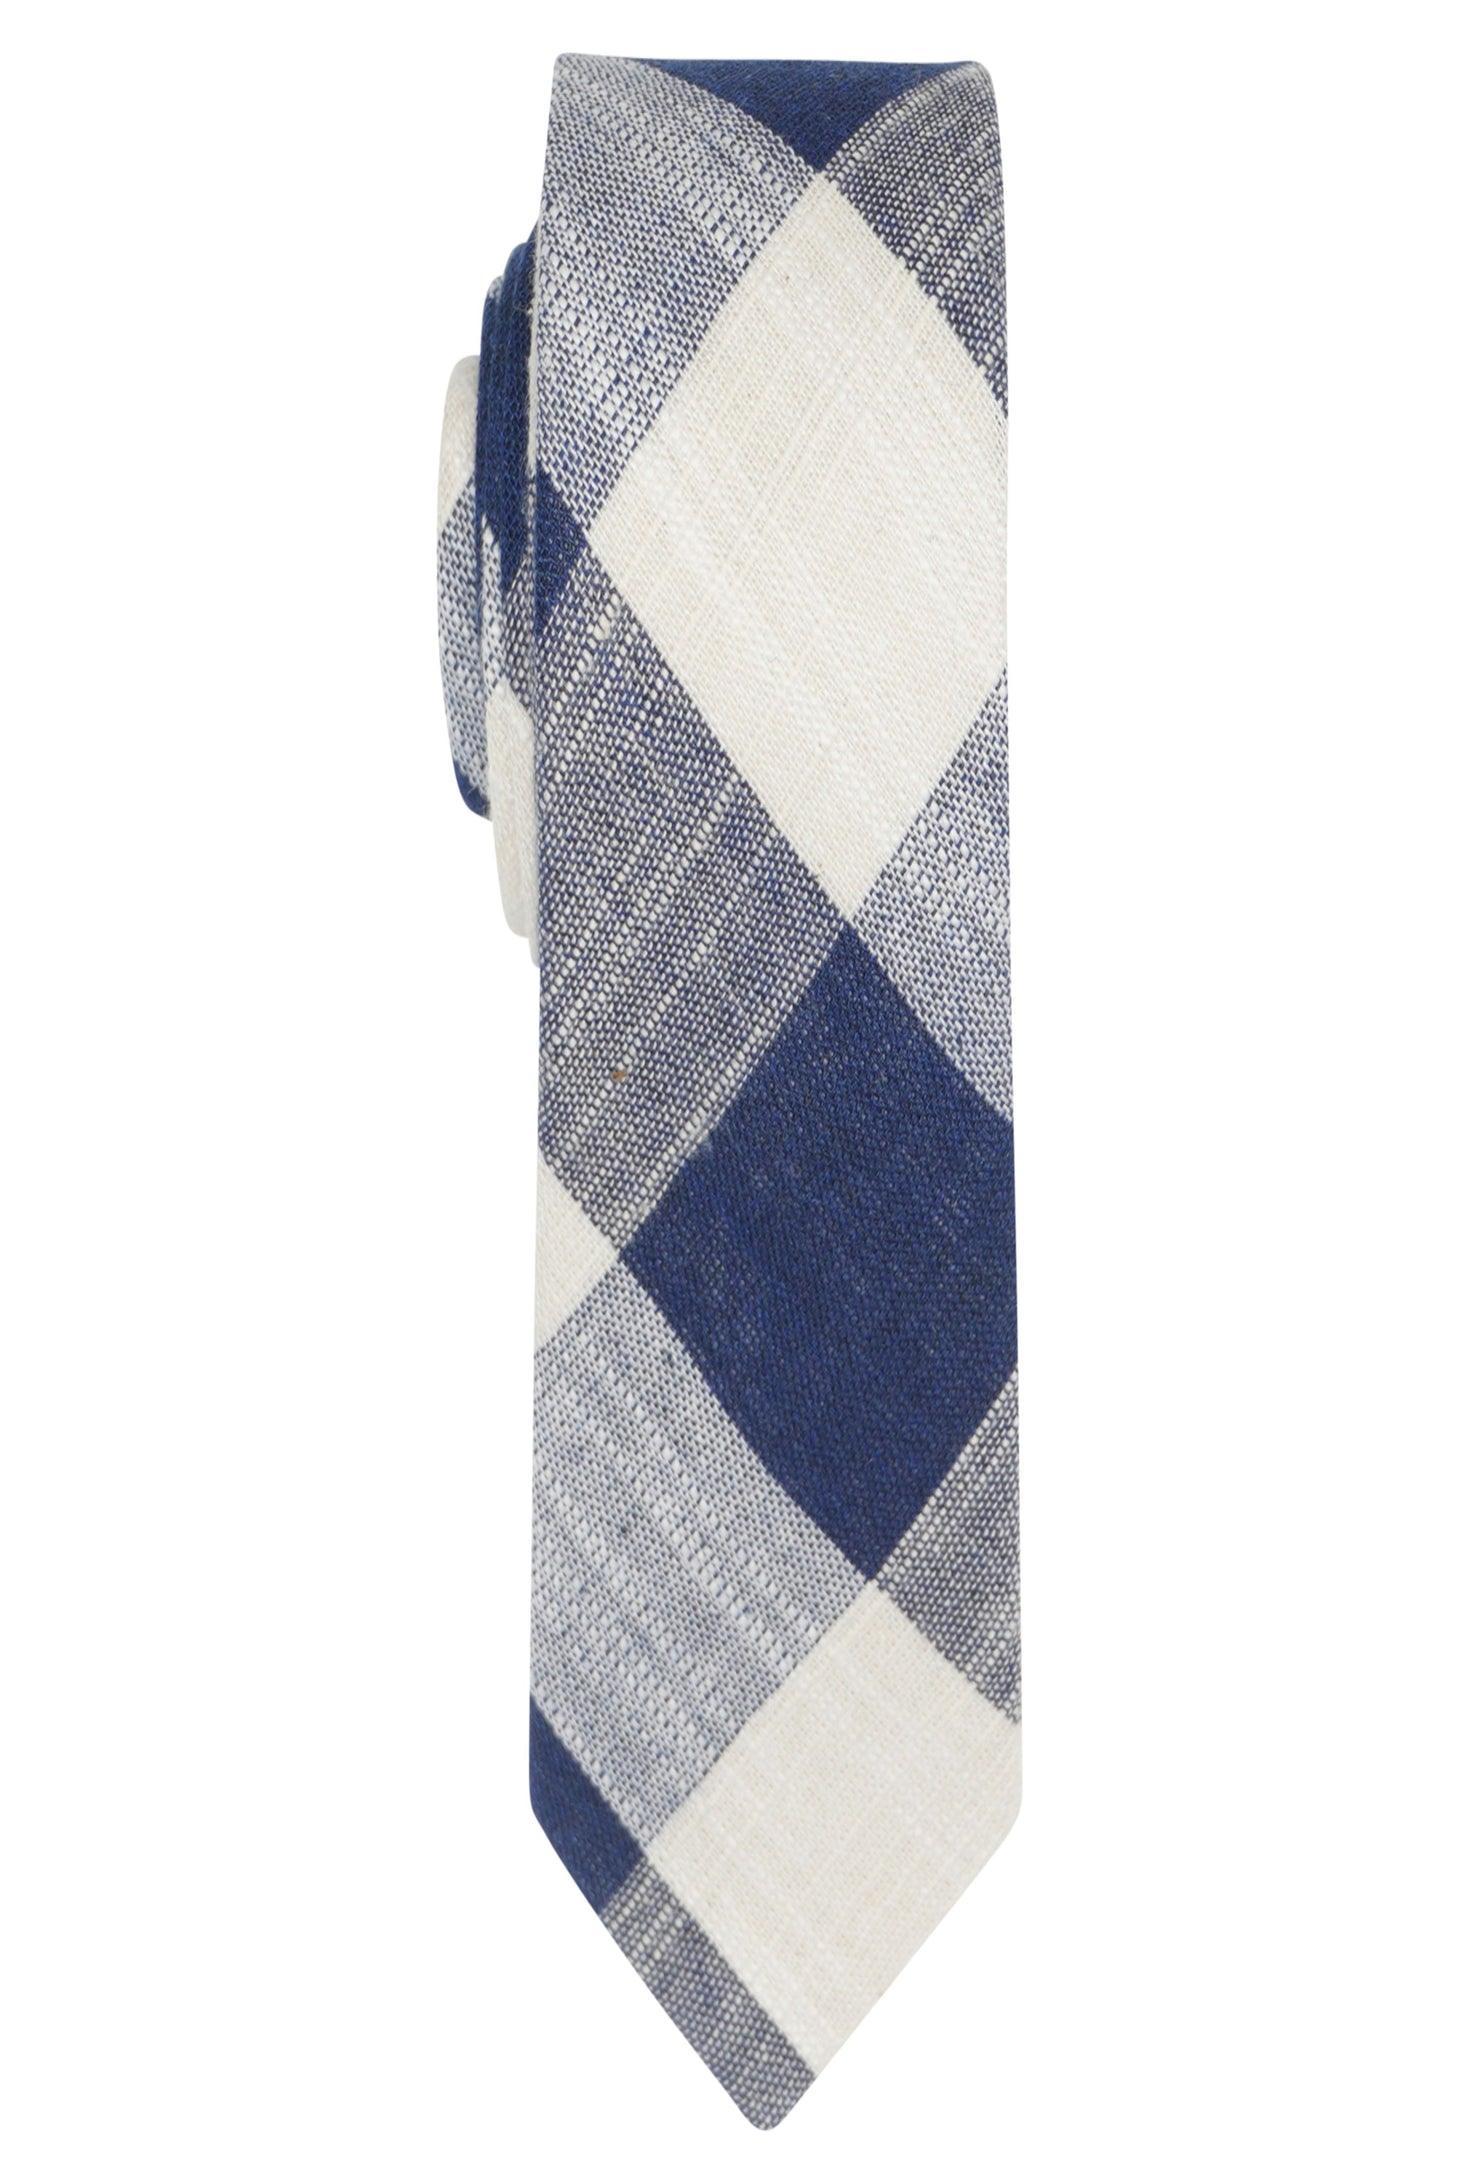 Blue & White Check Tie